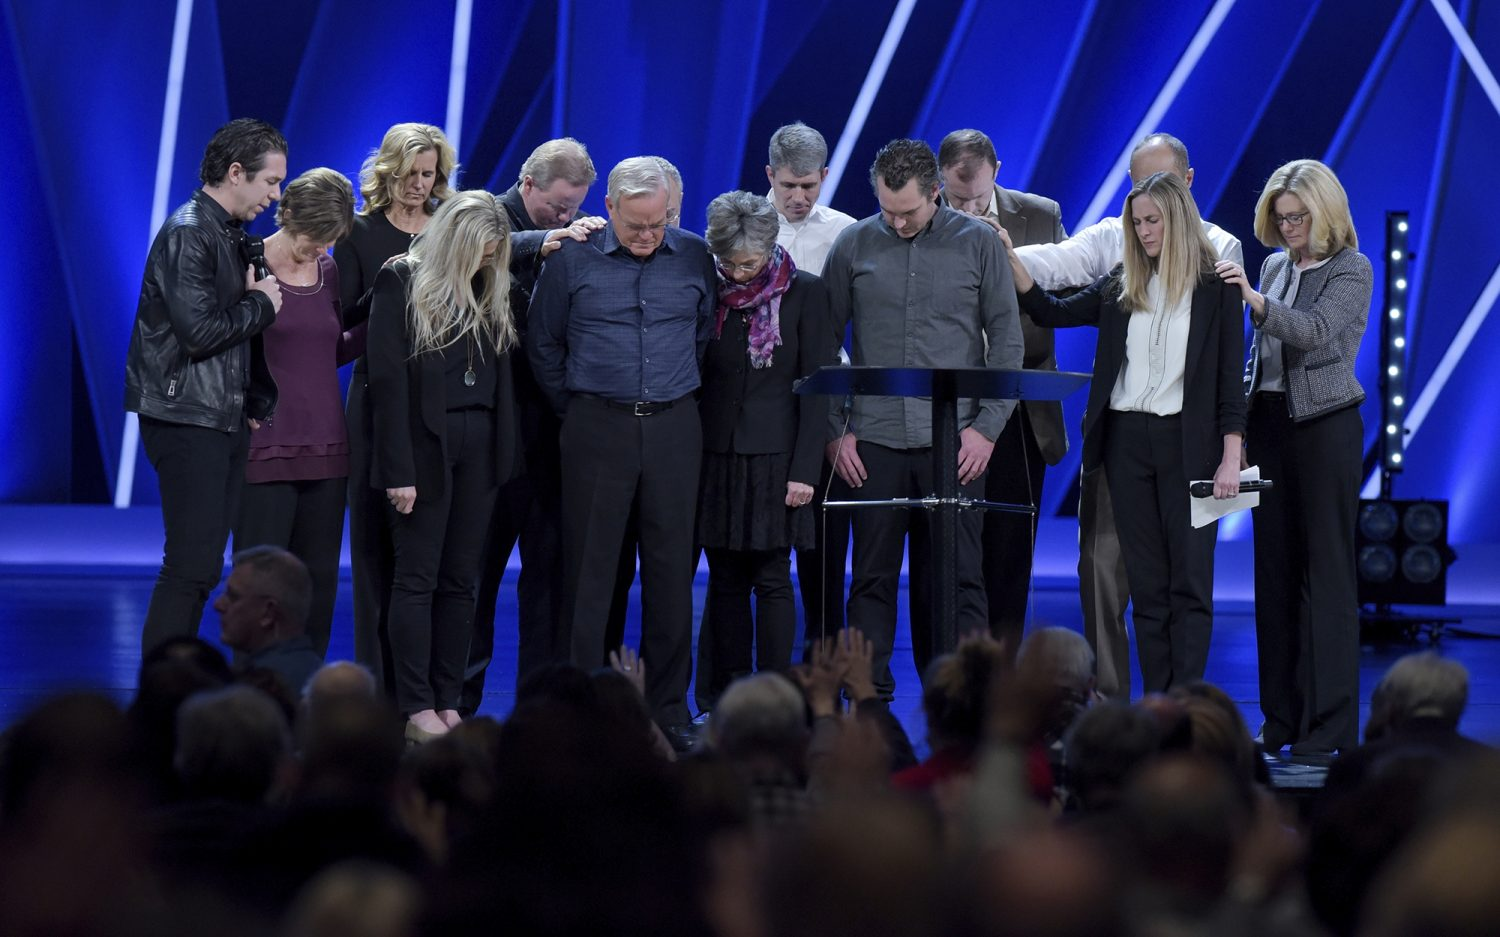 Willow Creek elders respond to new Hybels accusations